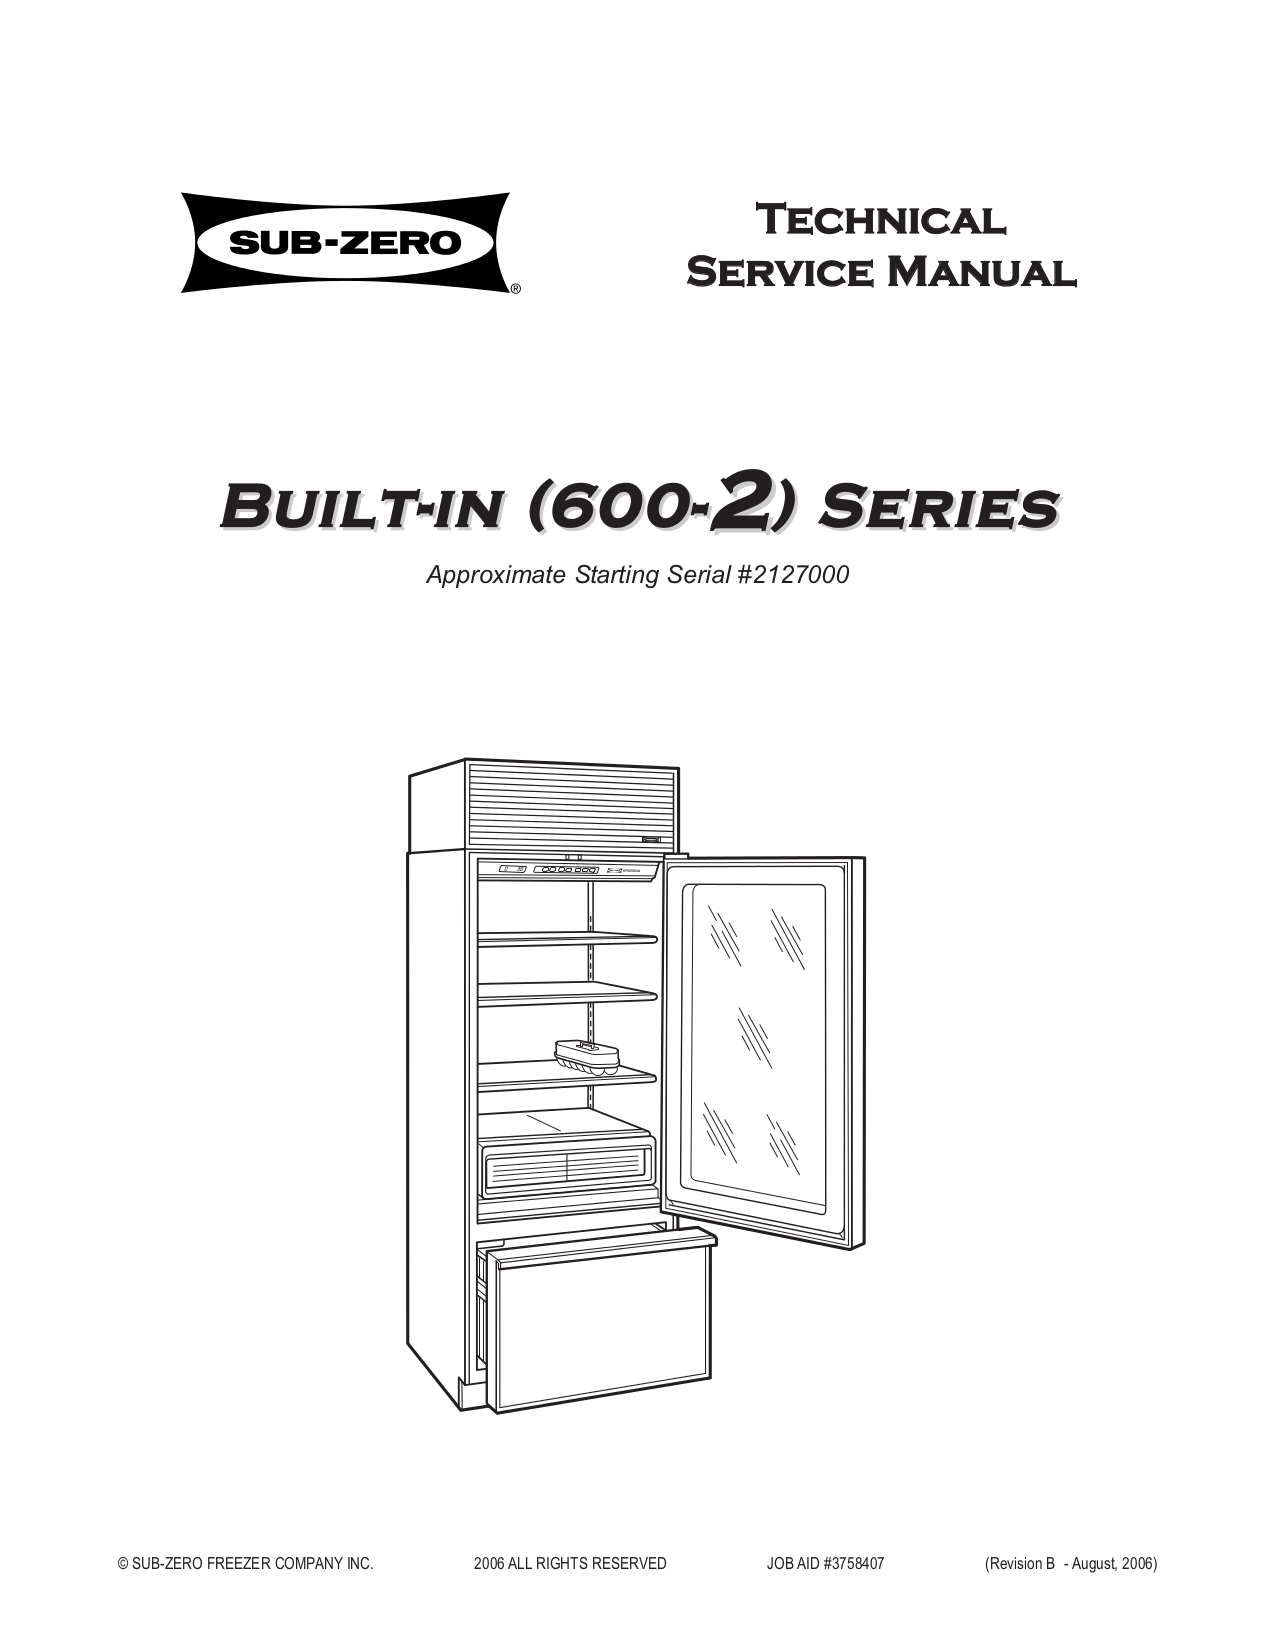 Download free pdf for Wolf Sub-Zero 601R Refrigerator manual